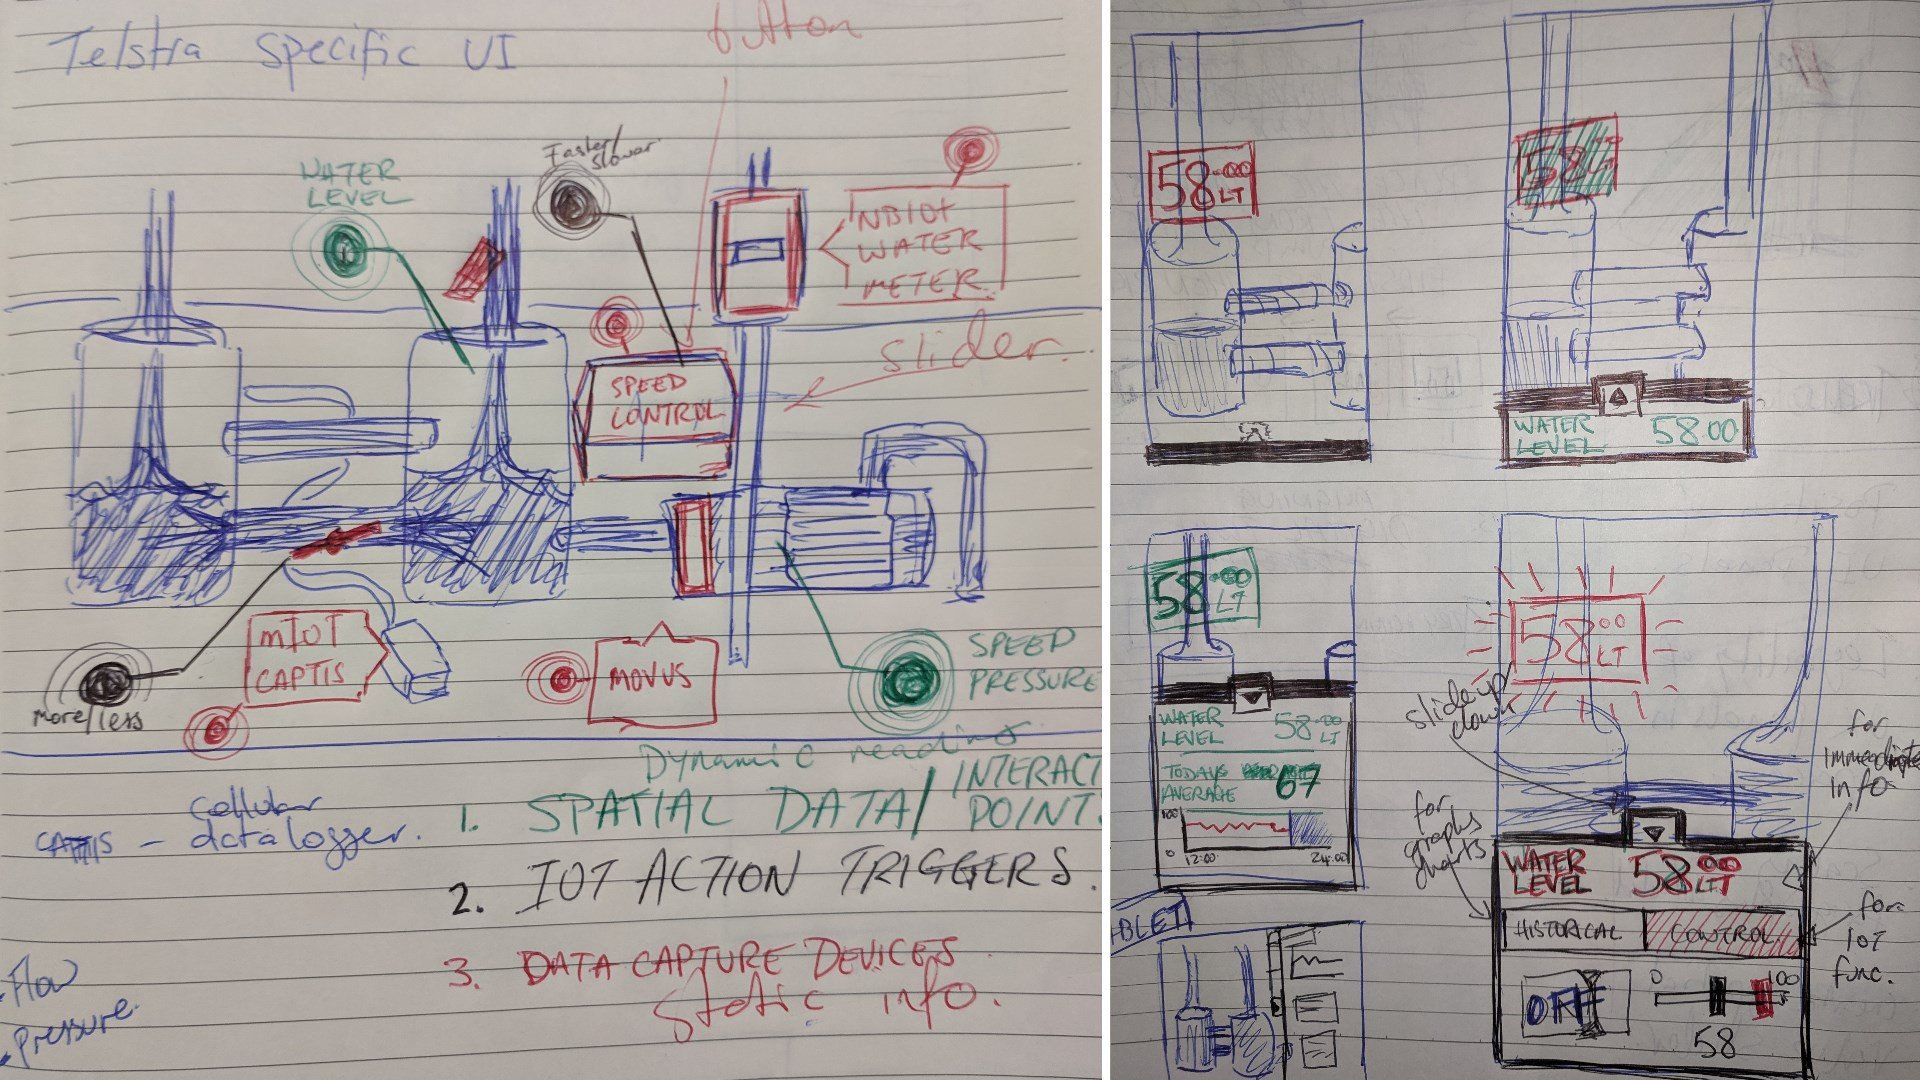 Sketches of the types of UI components needed and their positions in the virtual space